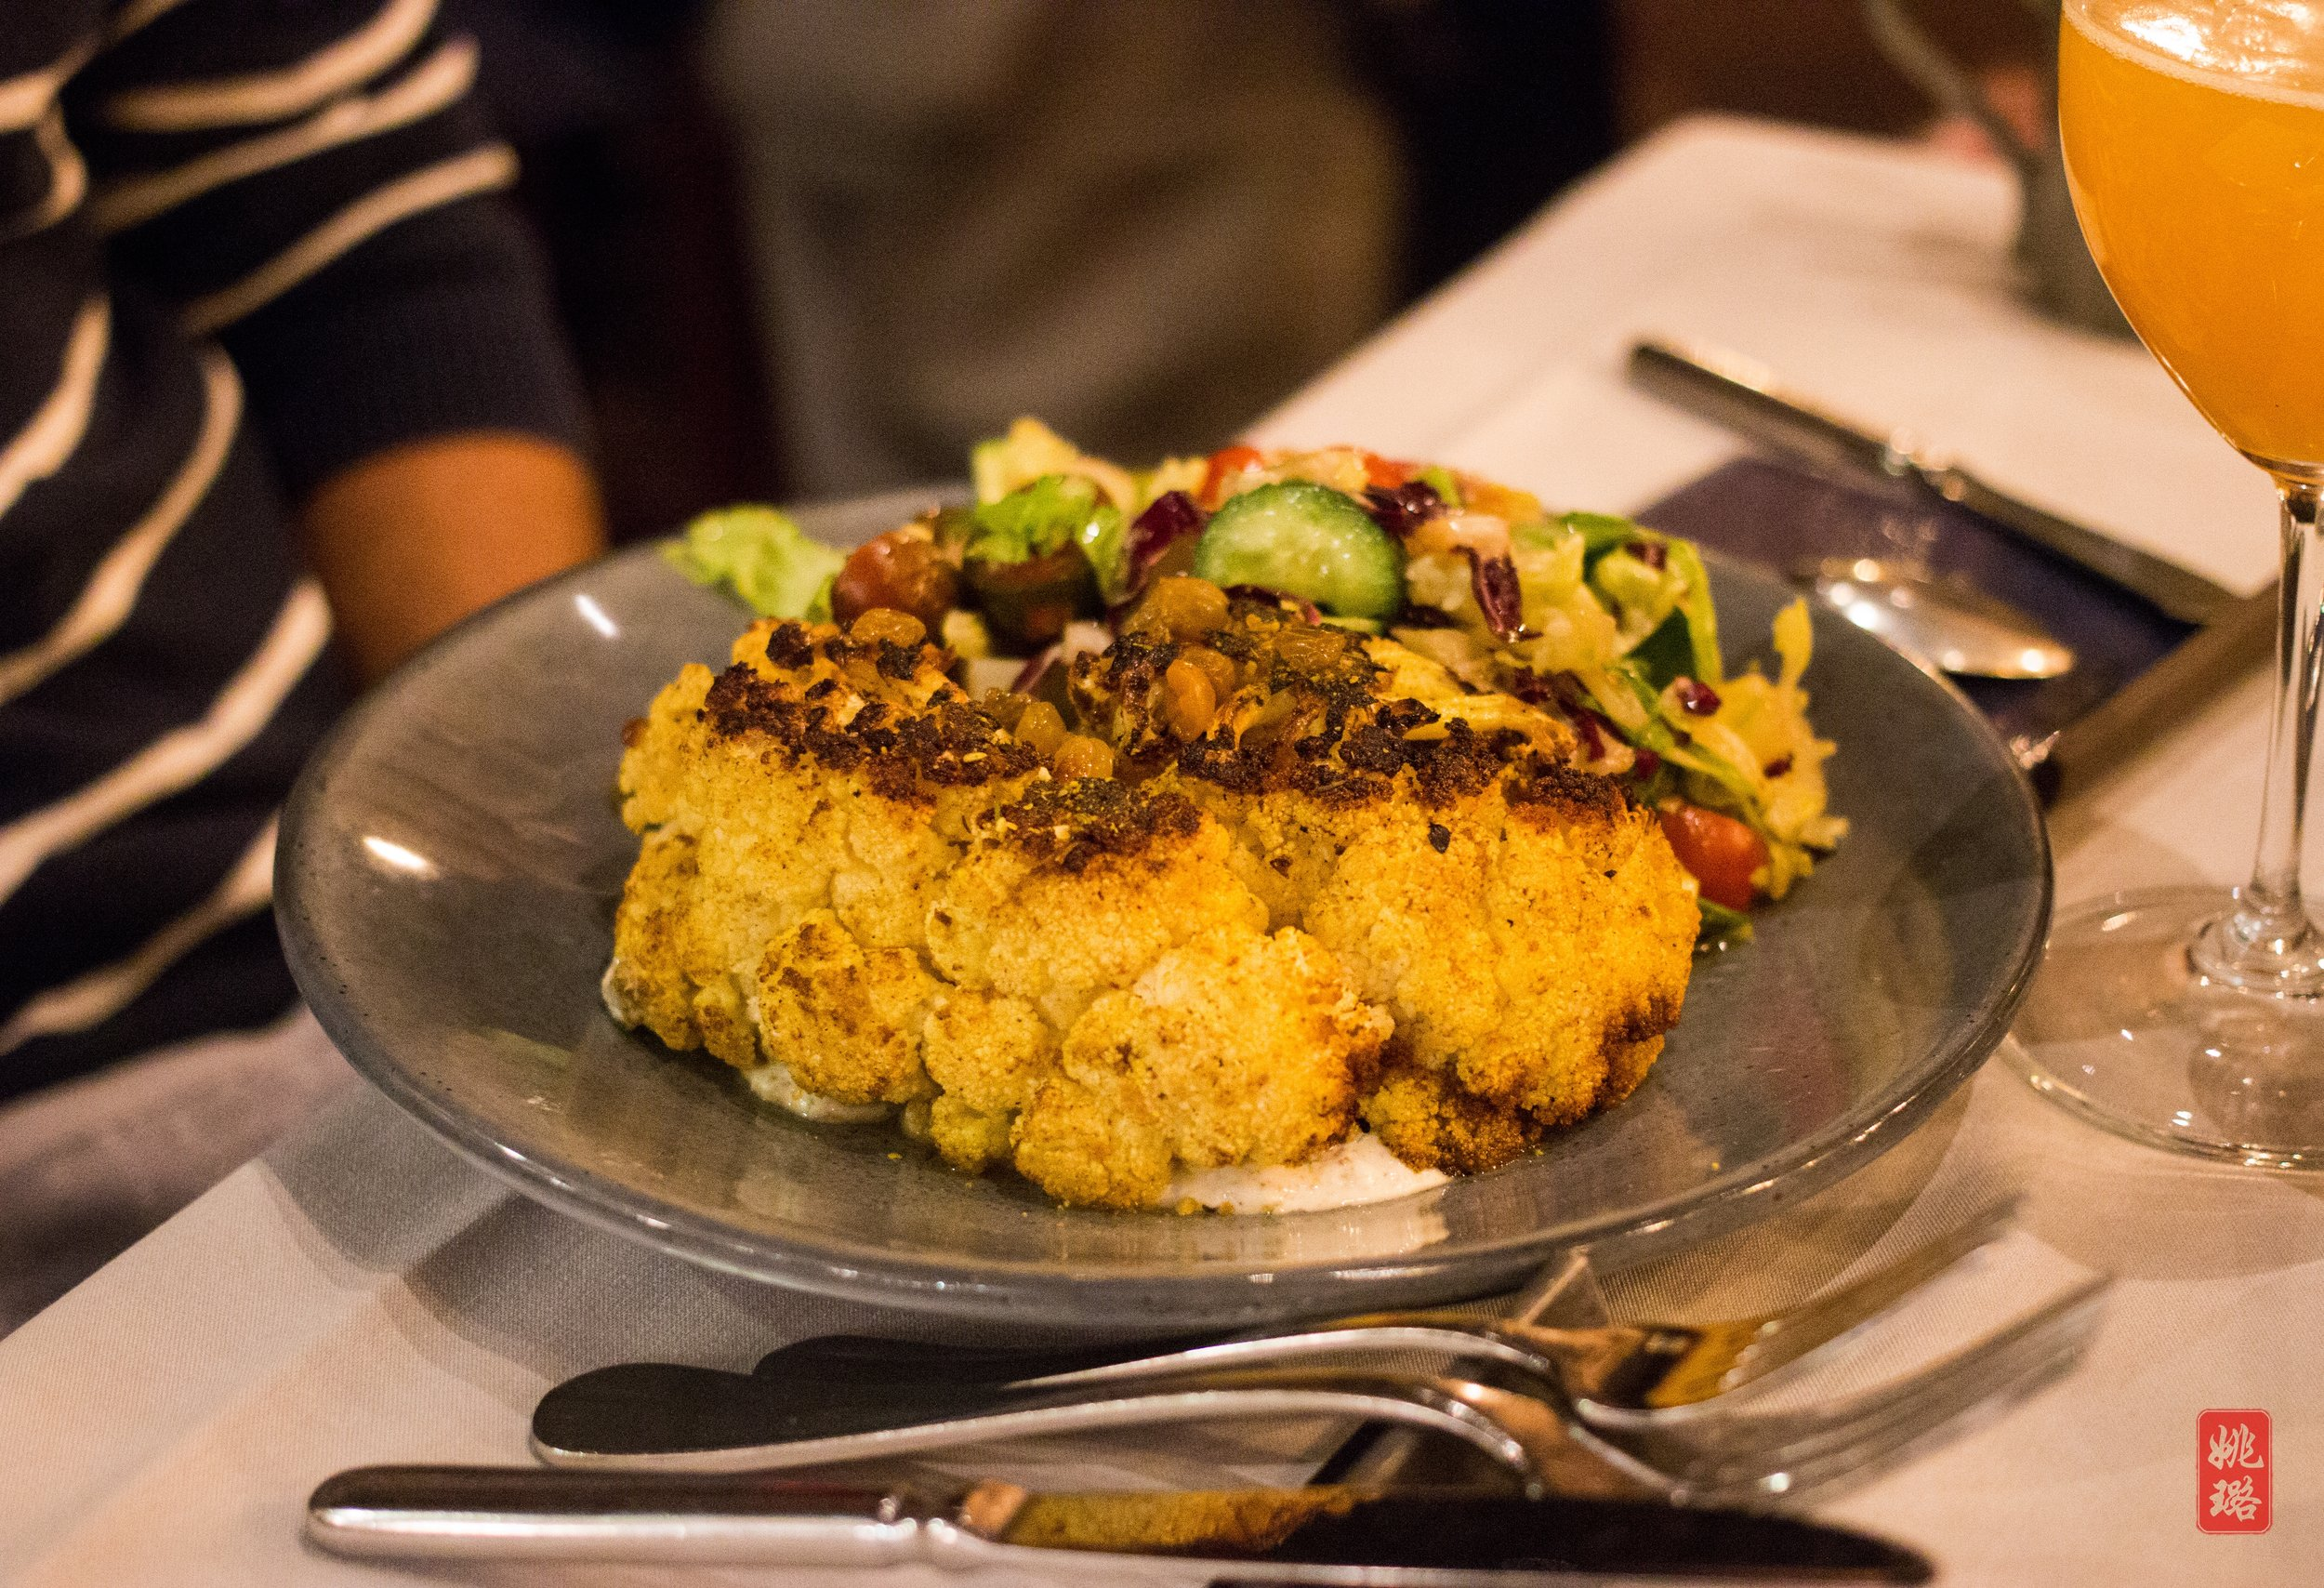 IMG_1859 Black Barn - curried cauliflower steak with cilantro raita, summer salad, toasted pine nuts and pickled raisins_2.jpg